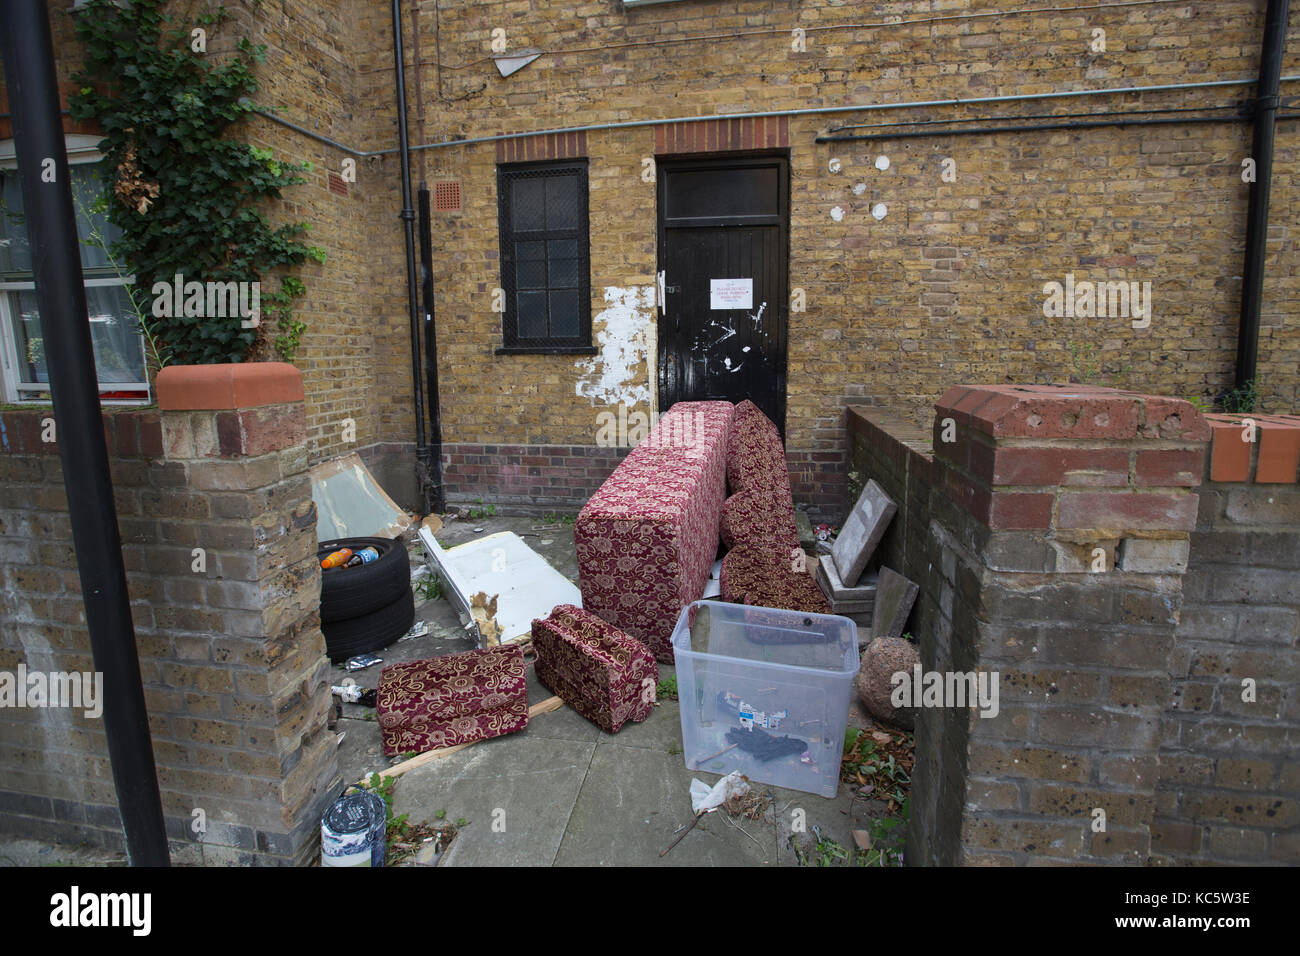 Fly tipping on a residential property, Marylebone, London, UK - Stock Image